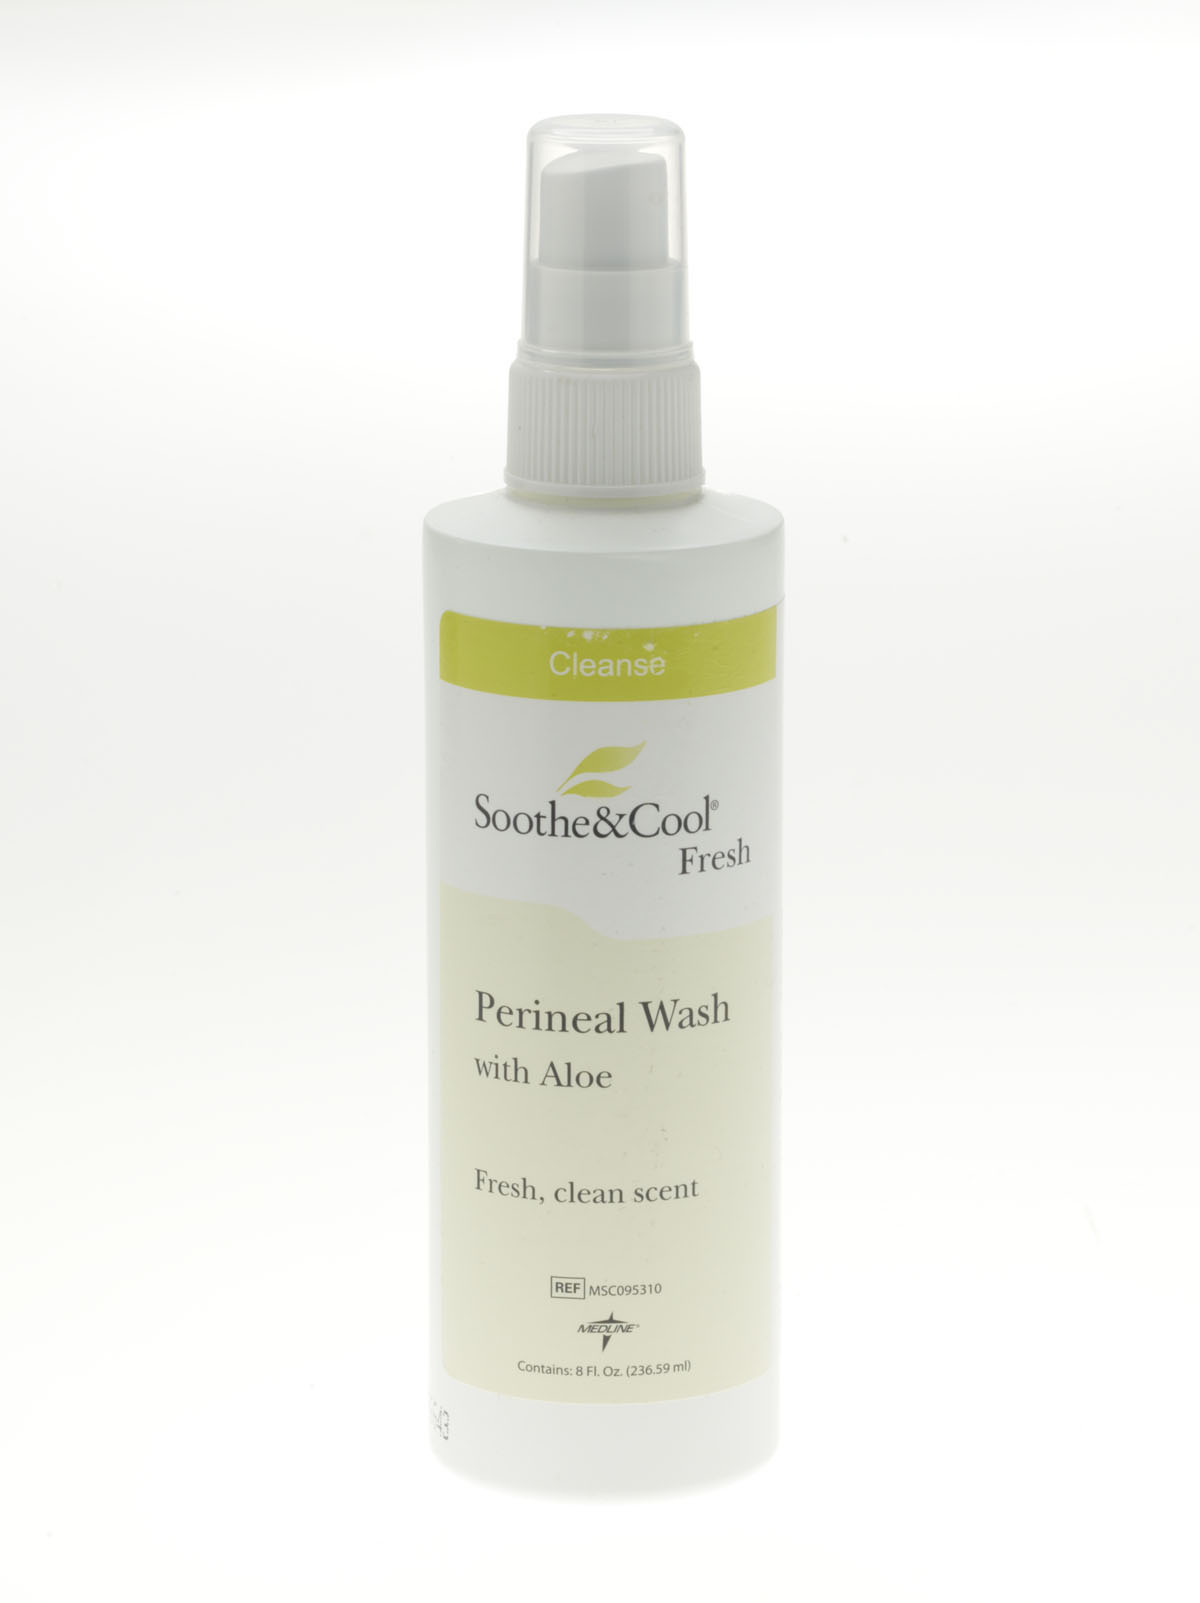 Soothe & Cool Perineal Wash Spray